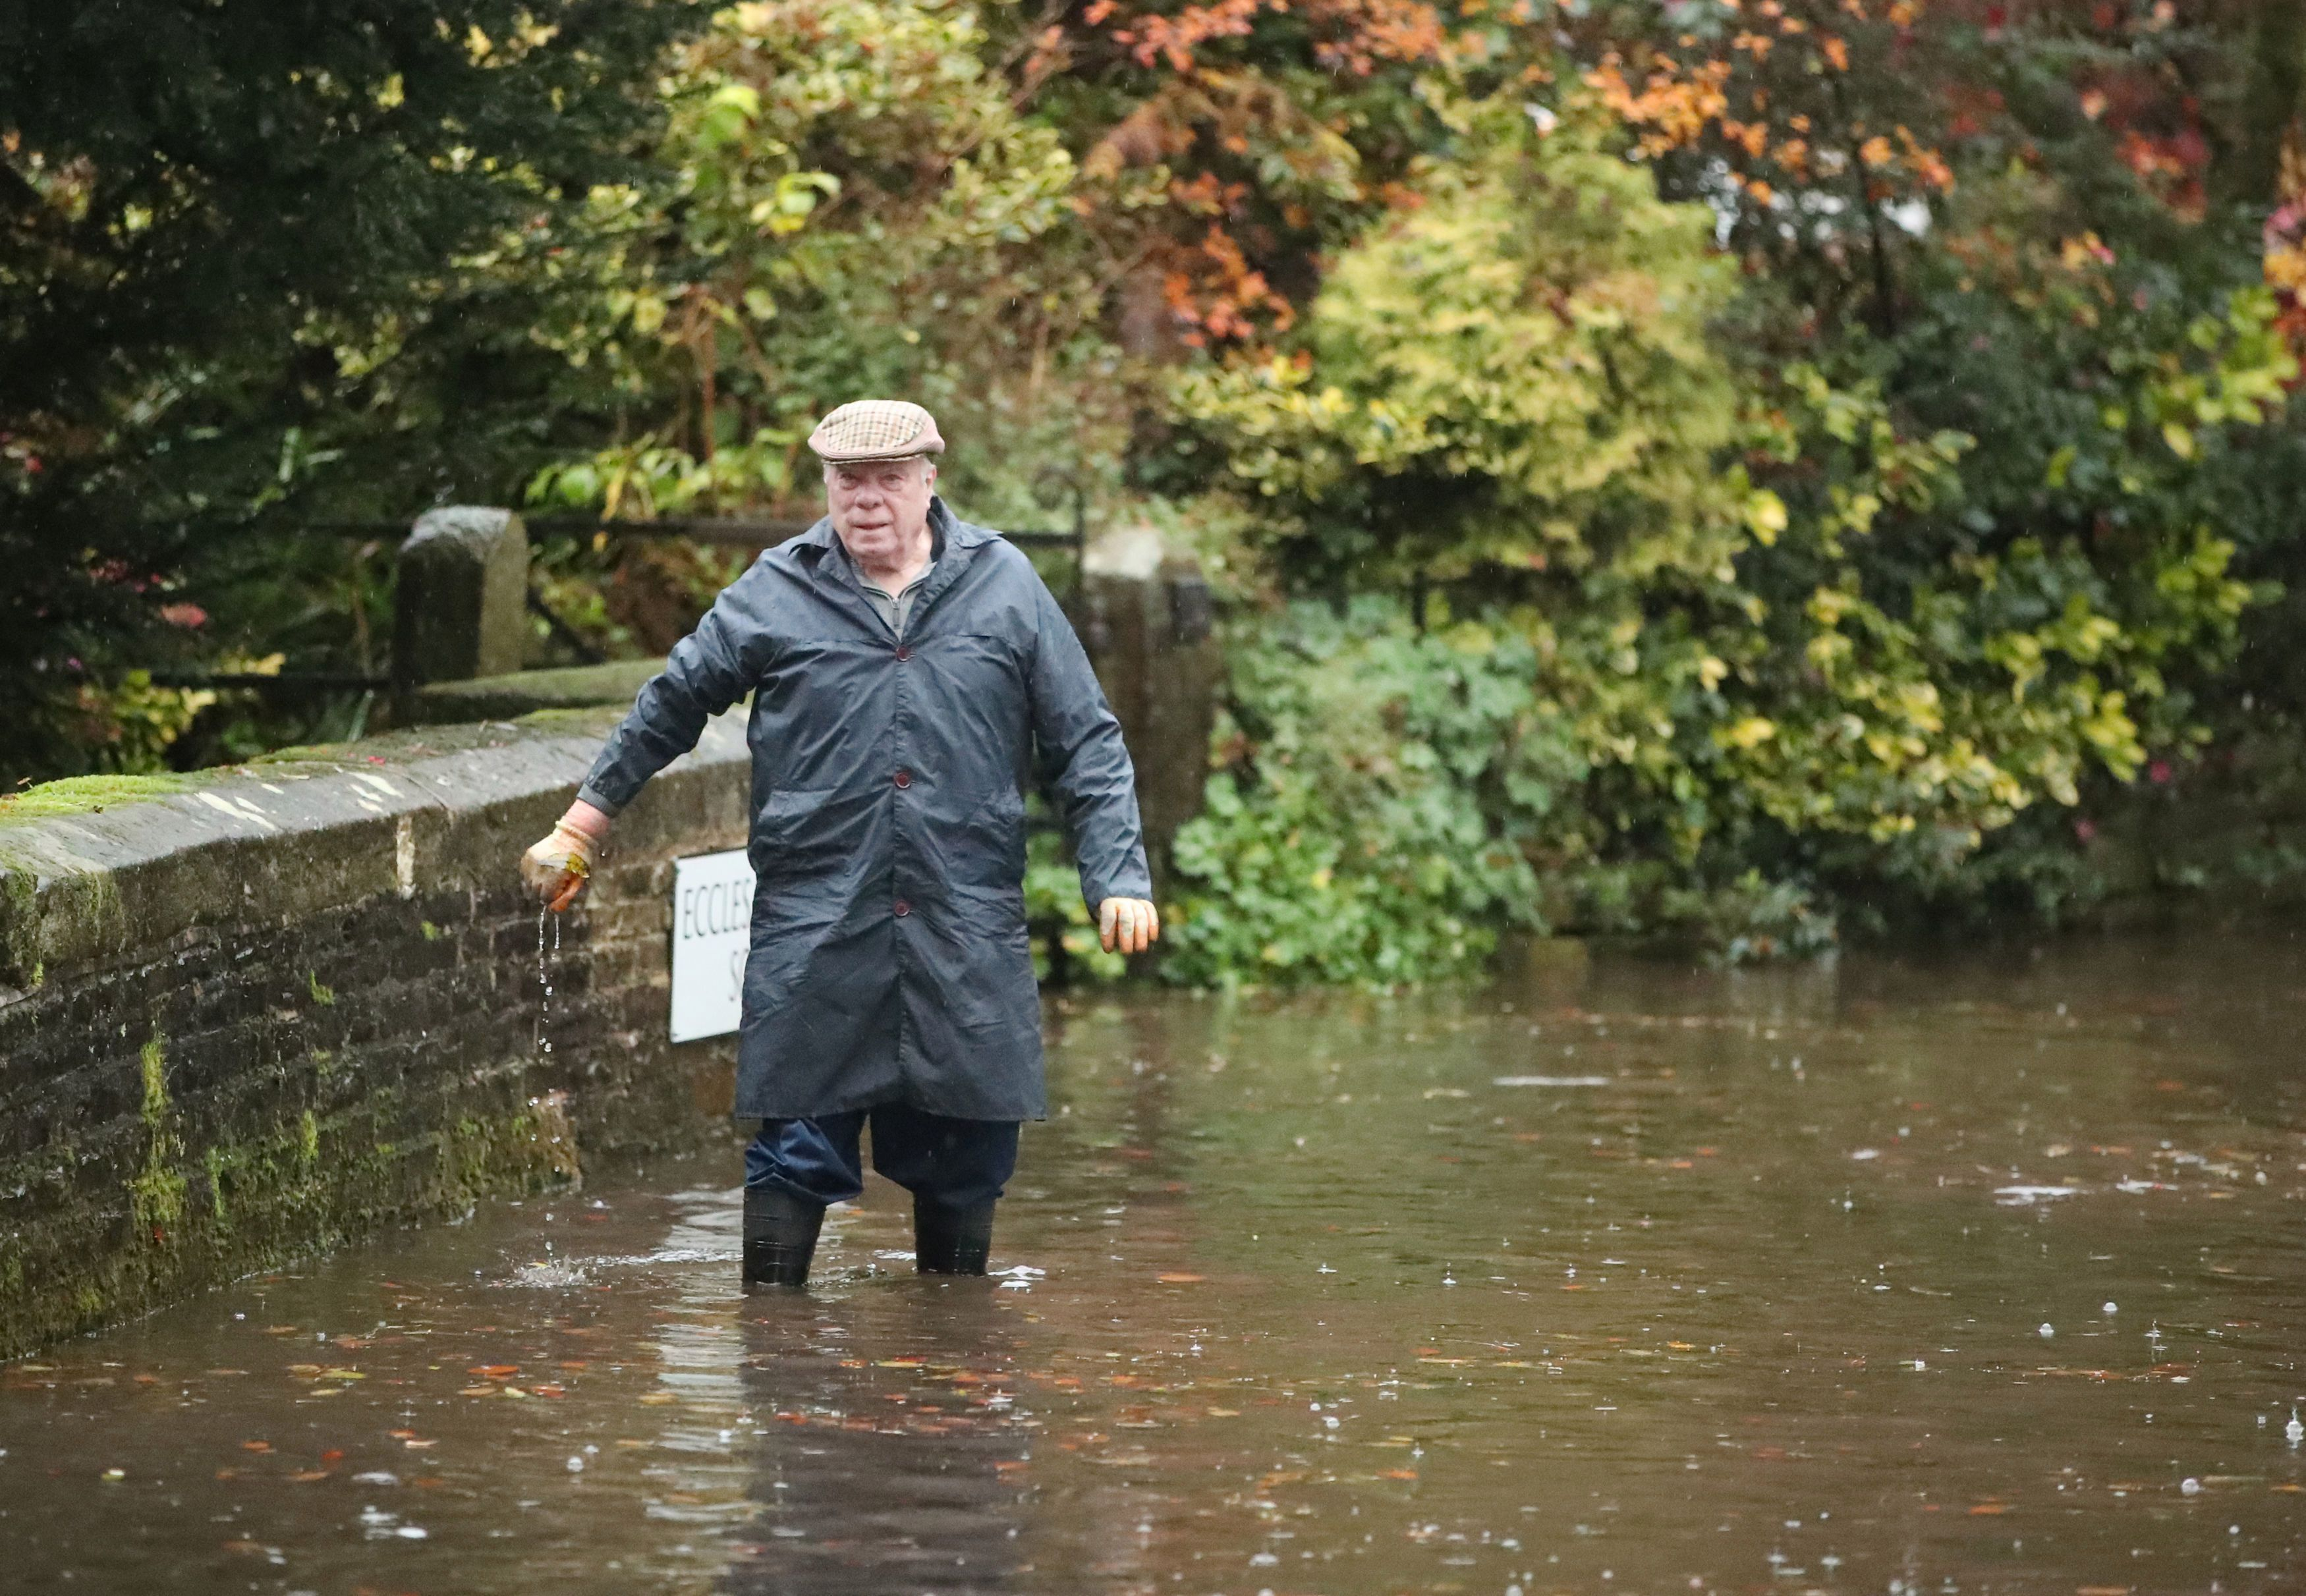 A man wades through the floods in the village of Whirlow near Sheffield